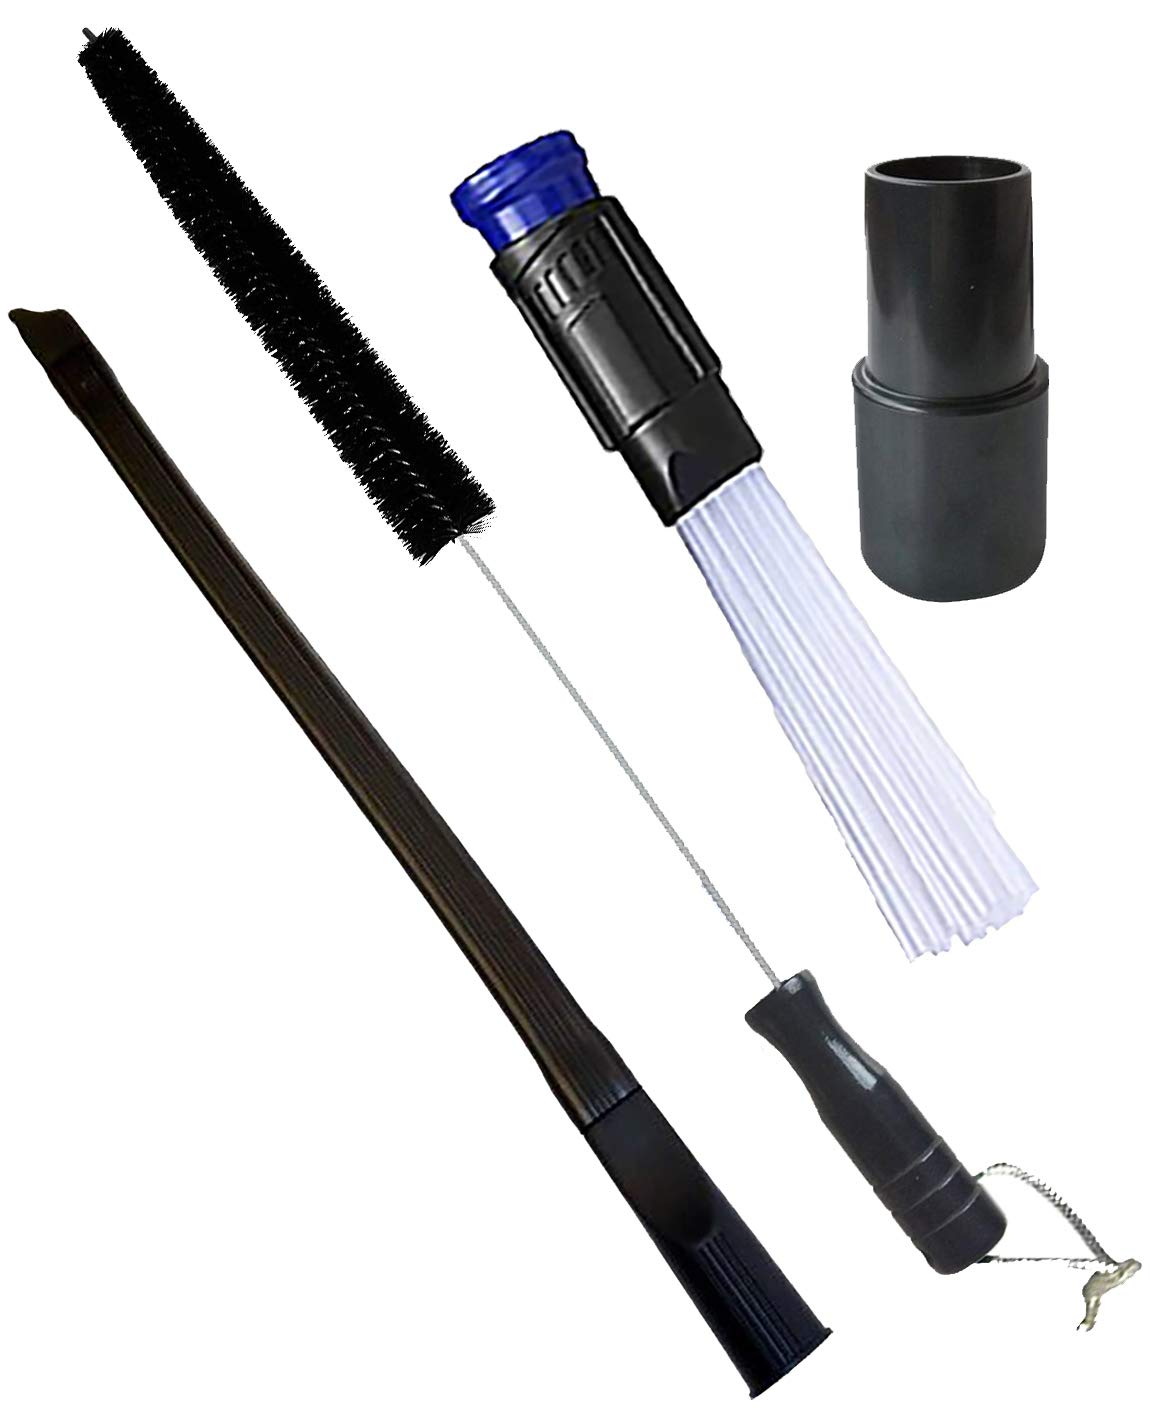 Wonlives Dryer Cleaning Kit Universal Vacuum Hose Attachment and 70cm Flexible Dryer Vent Cleaning Brush Fits Vacuum Hoses 32mm,Include Adapter 32mm to 35mm